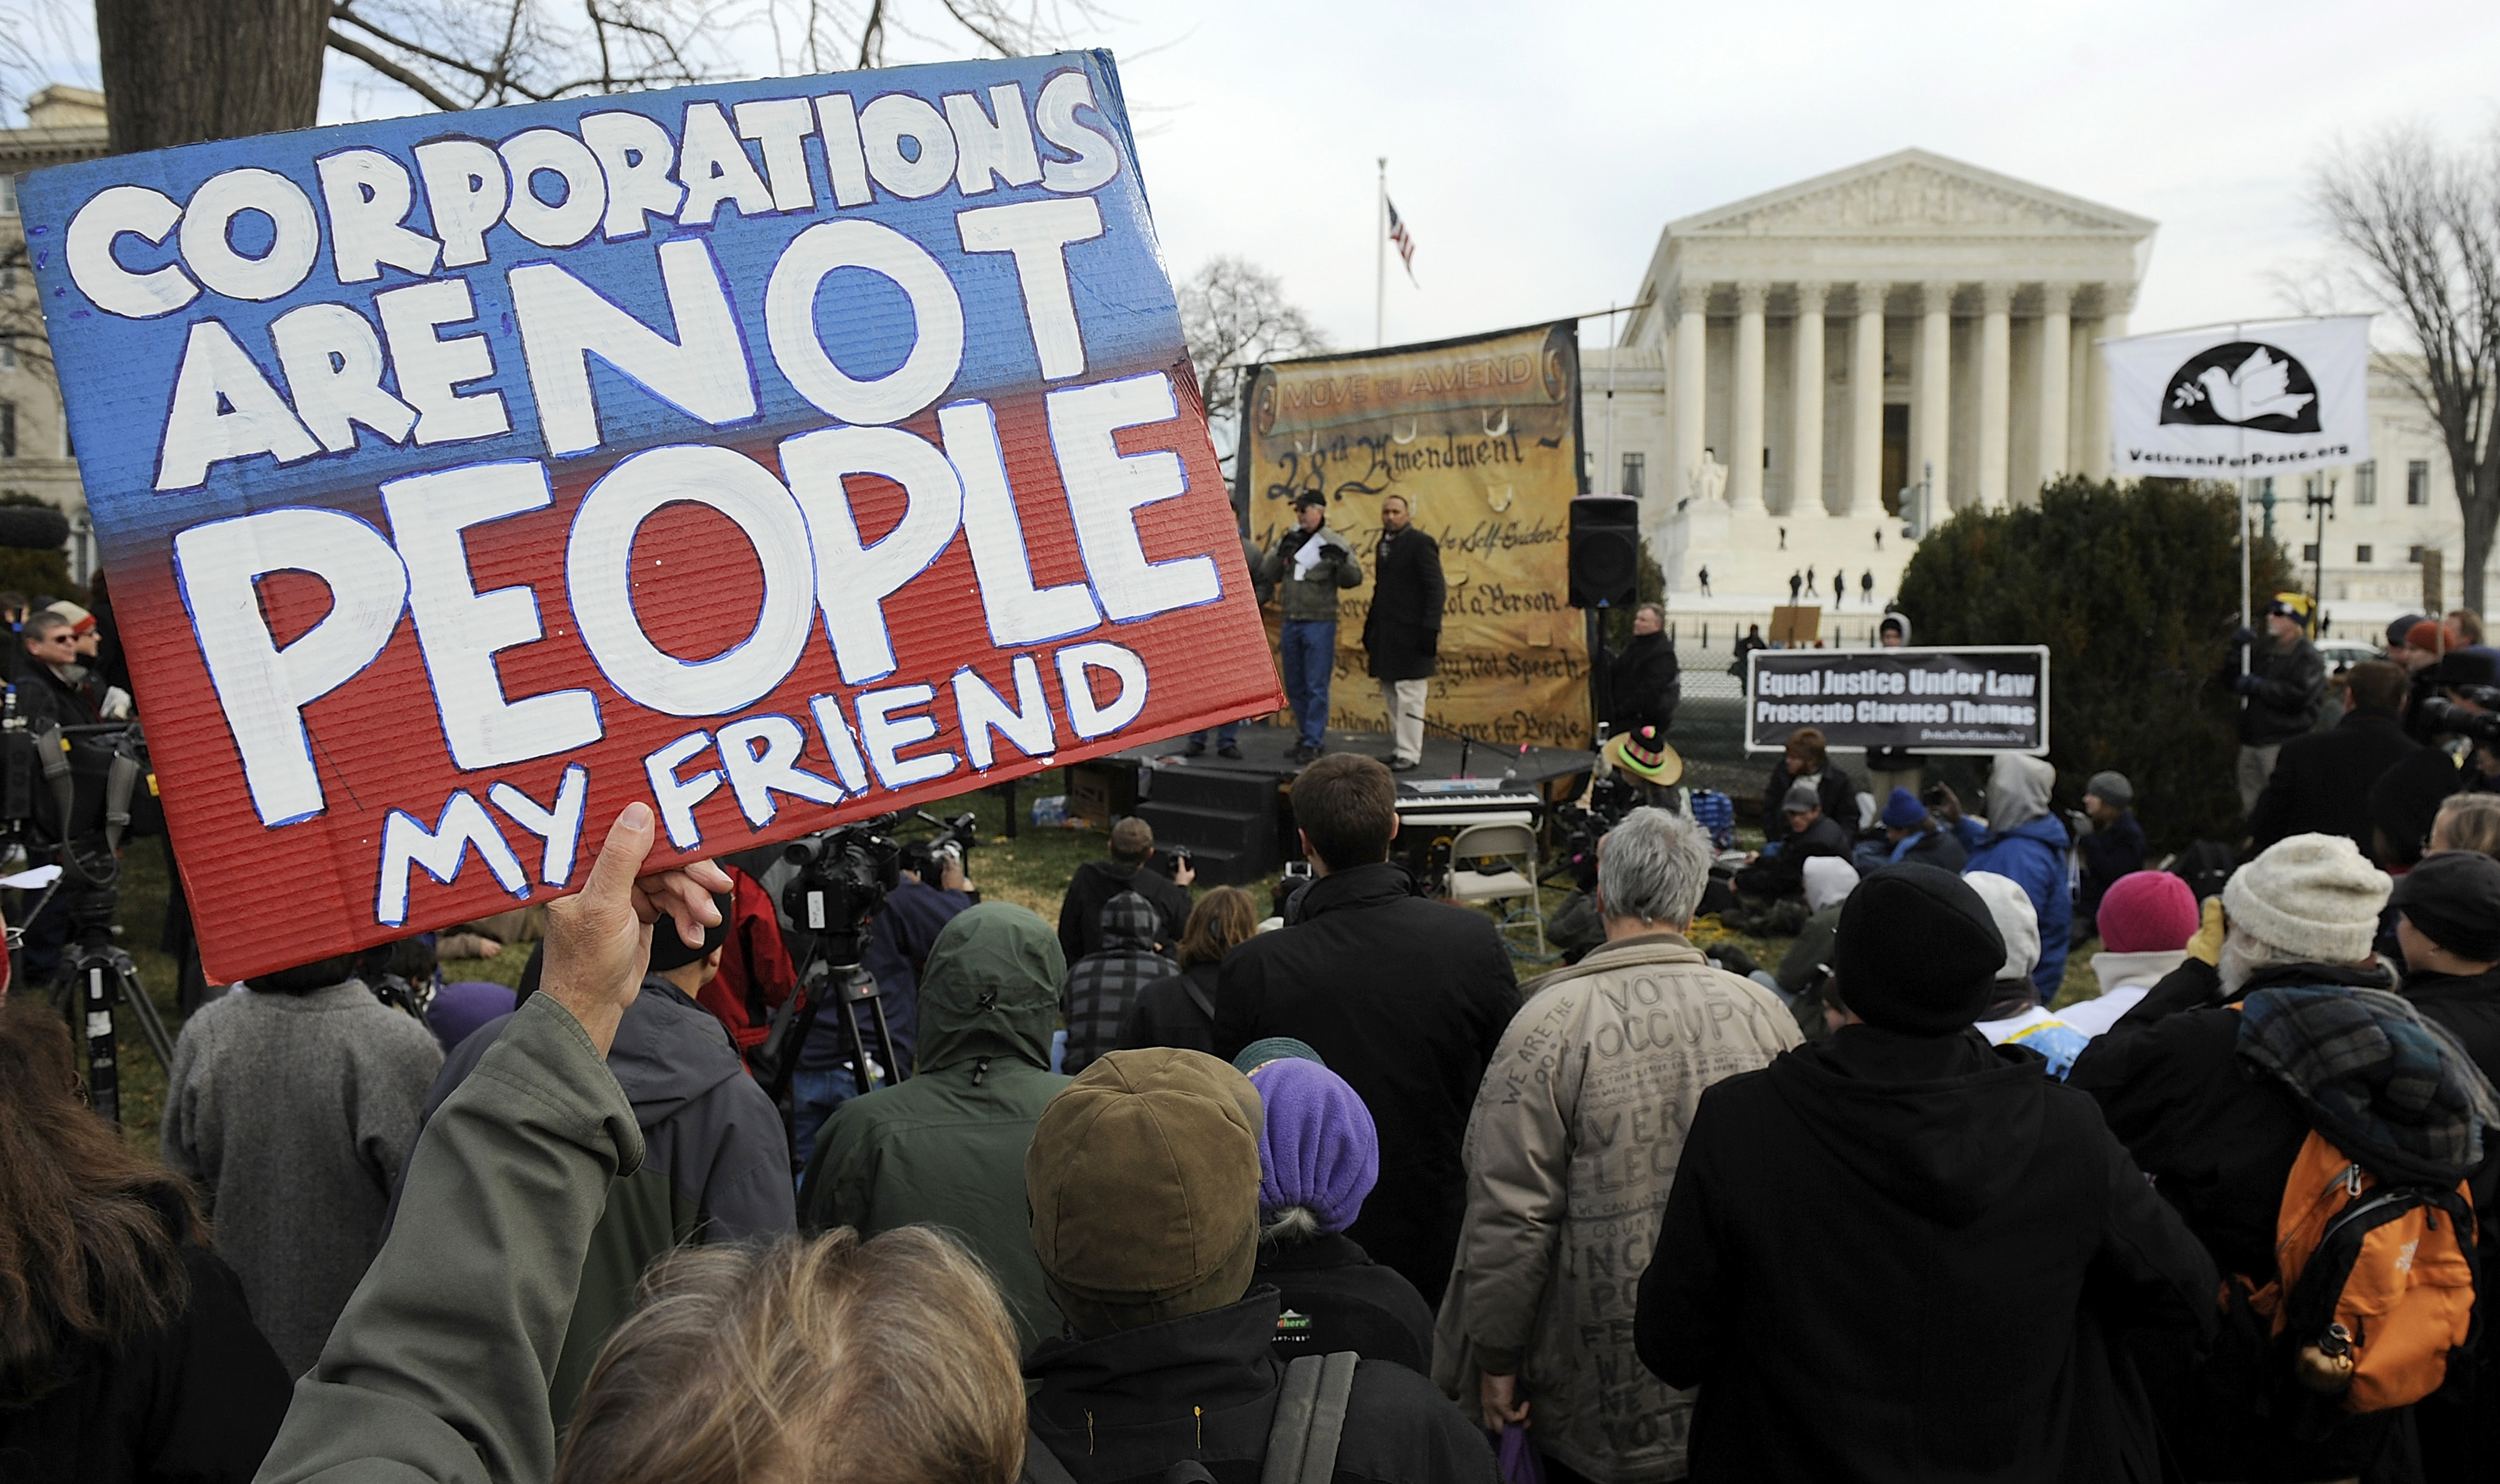 Bloomberg Poll: 78% Of Americans, Reps, Dems And Inds, Oppose Citizens United!